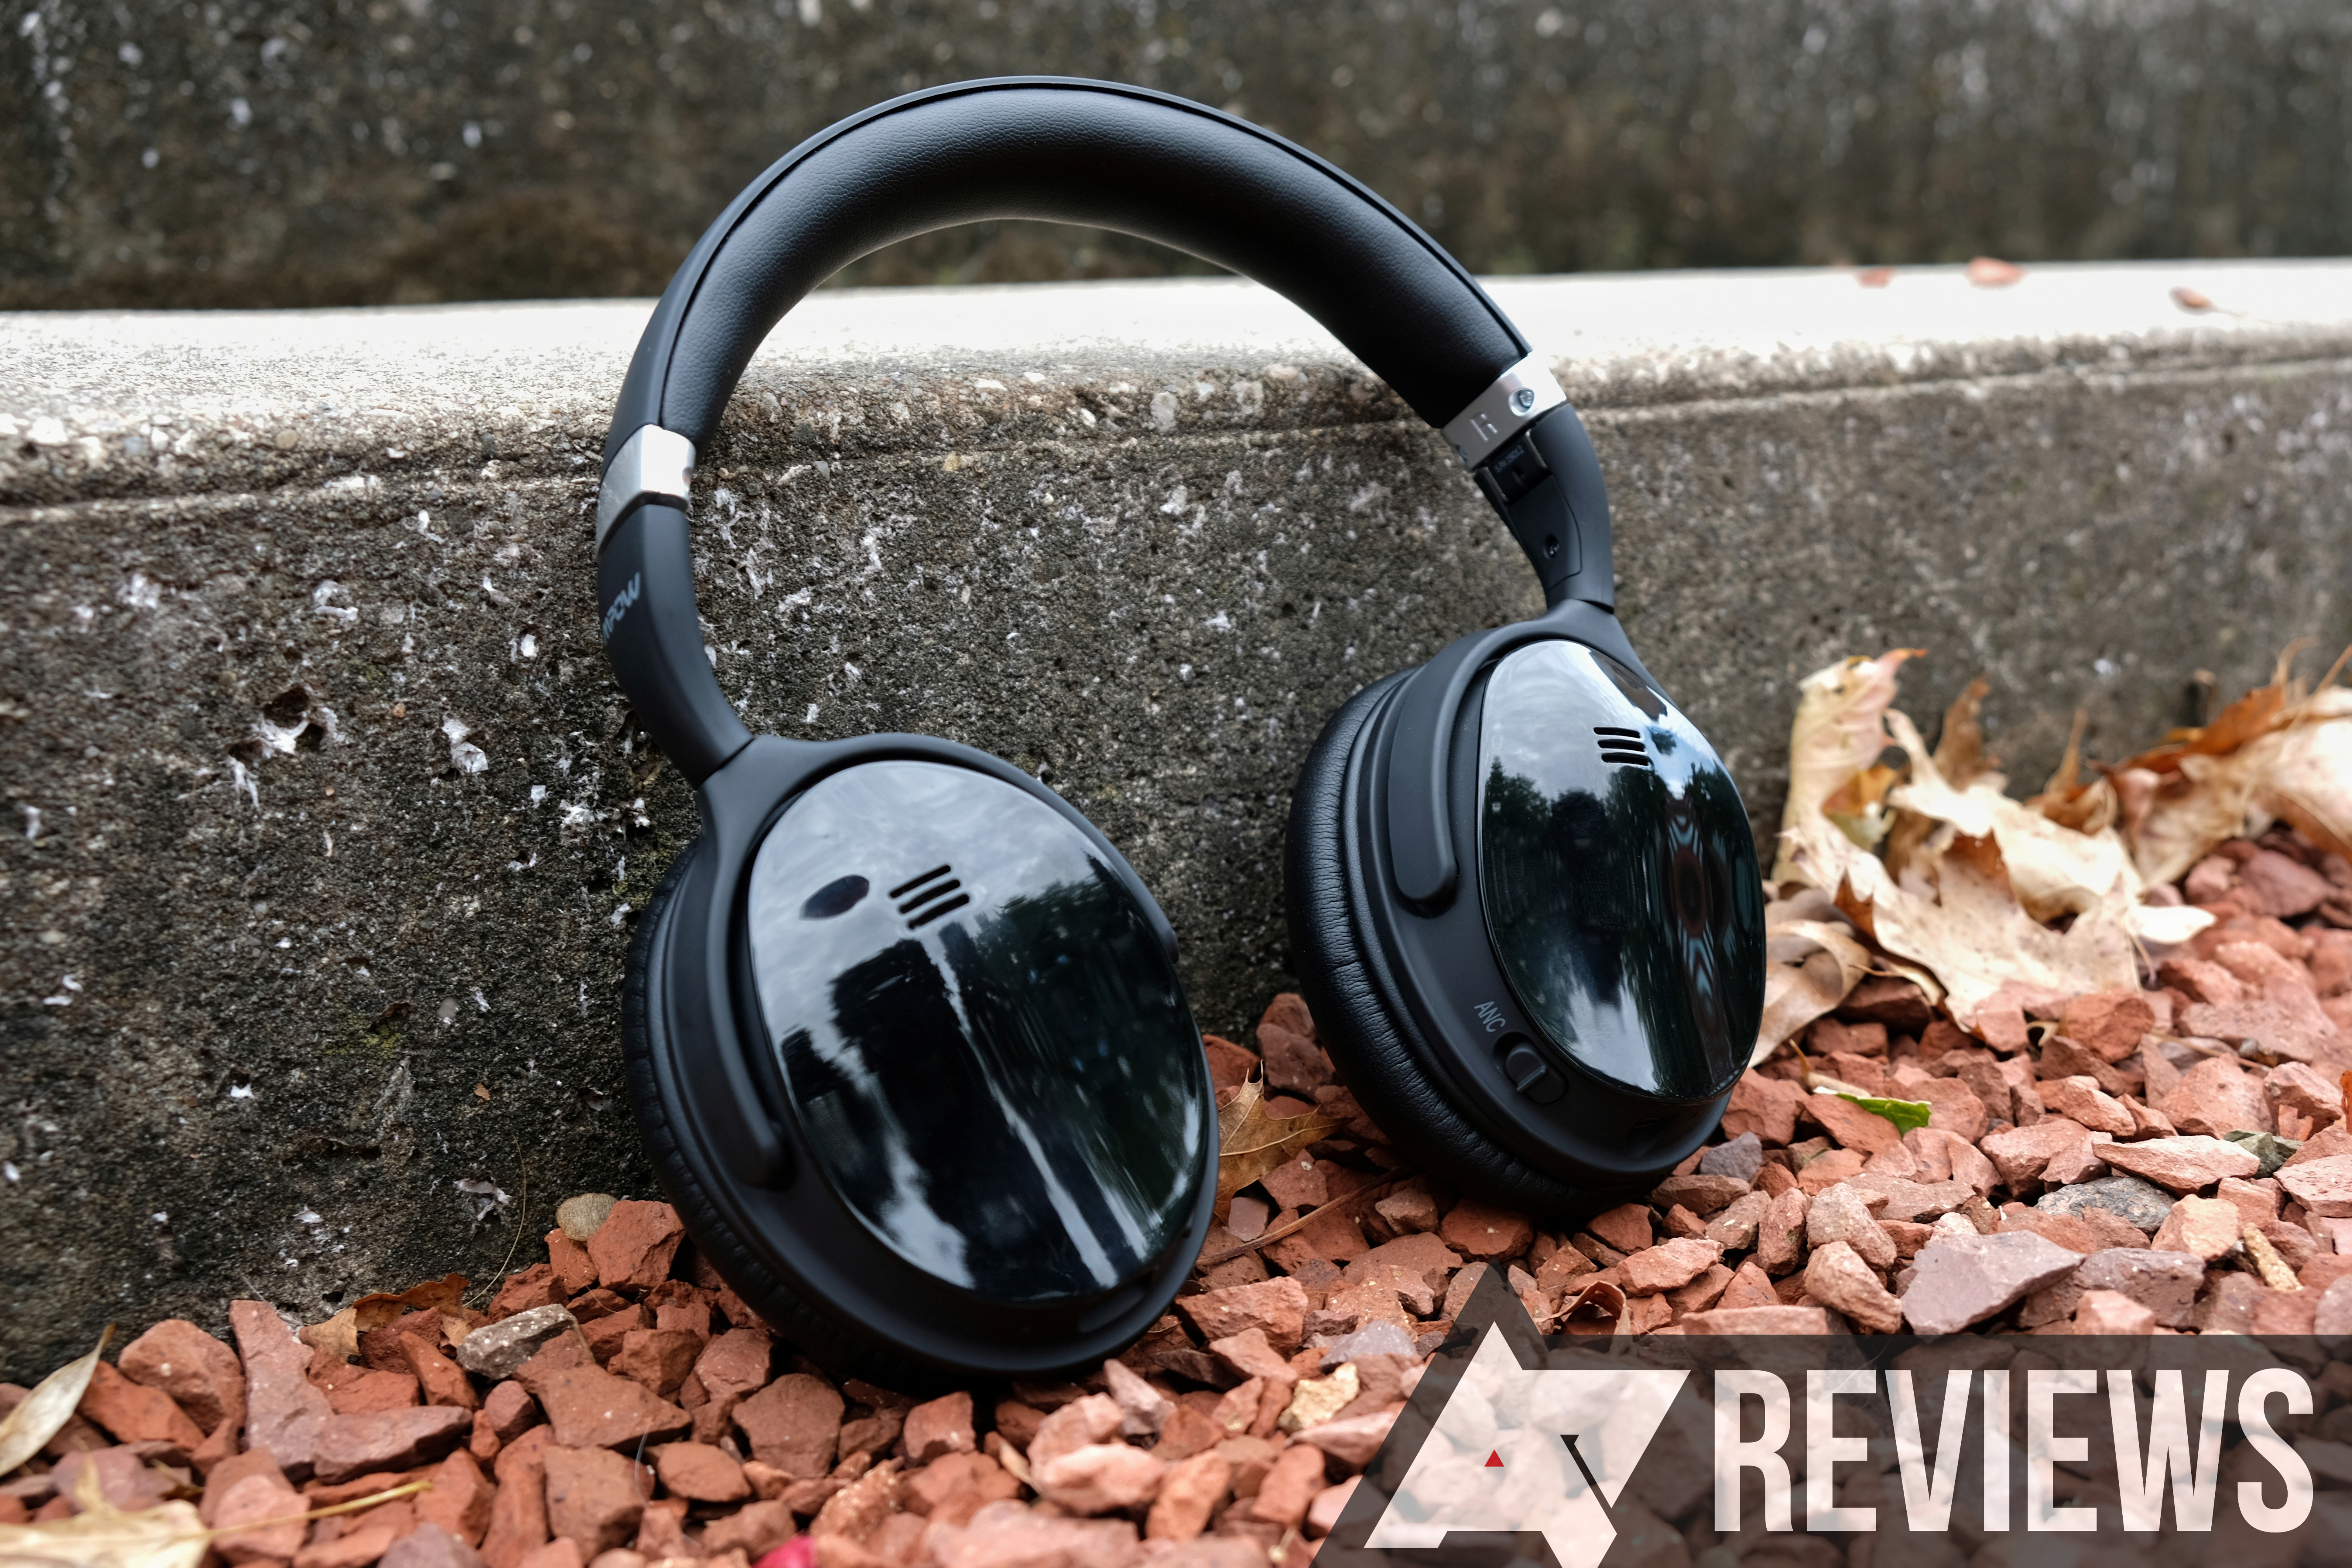 Mpow's H5 noise-canceling headphones get the job done for 50 bucks